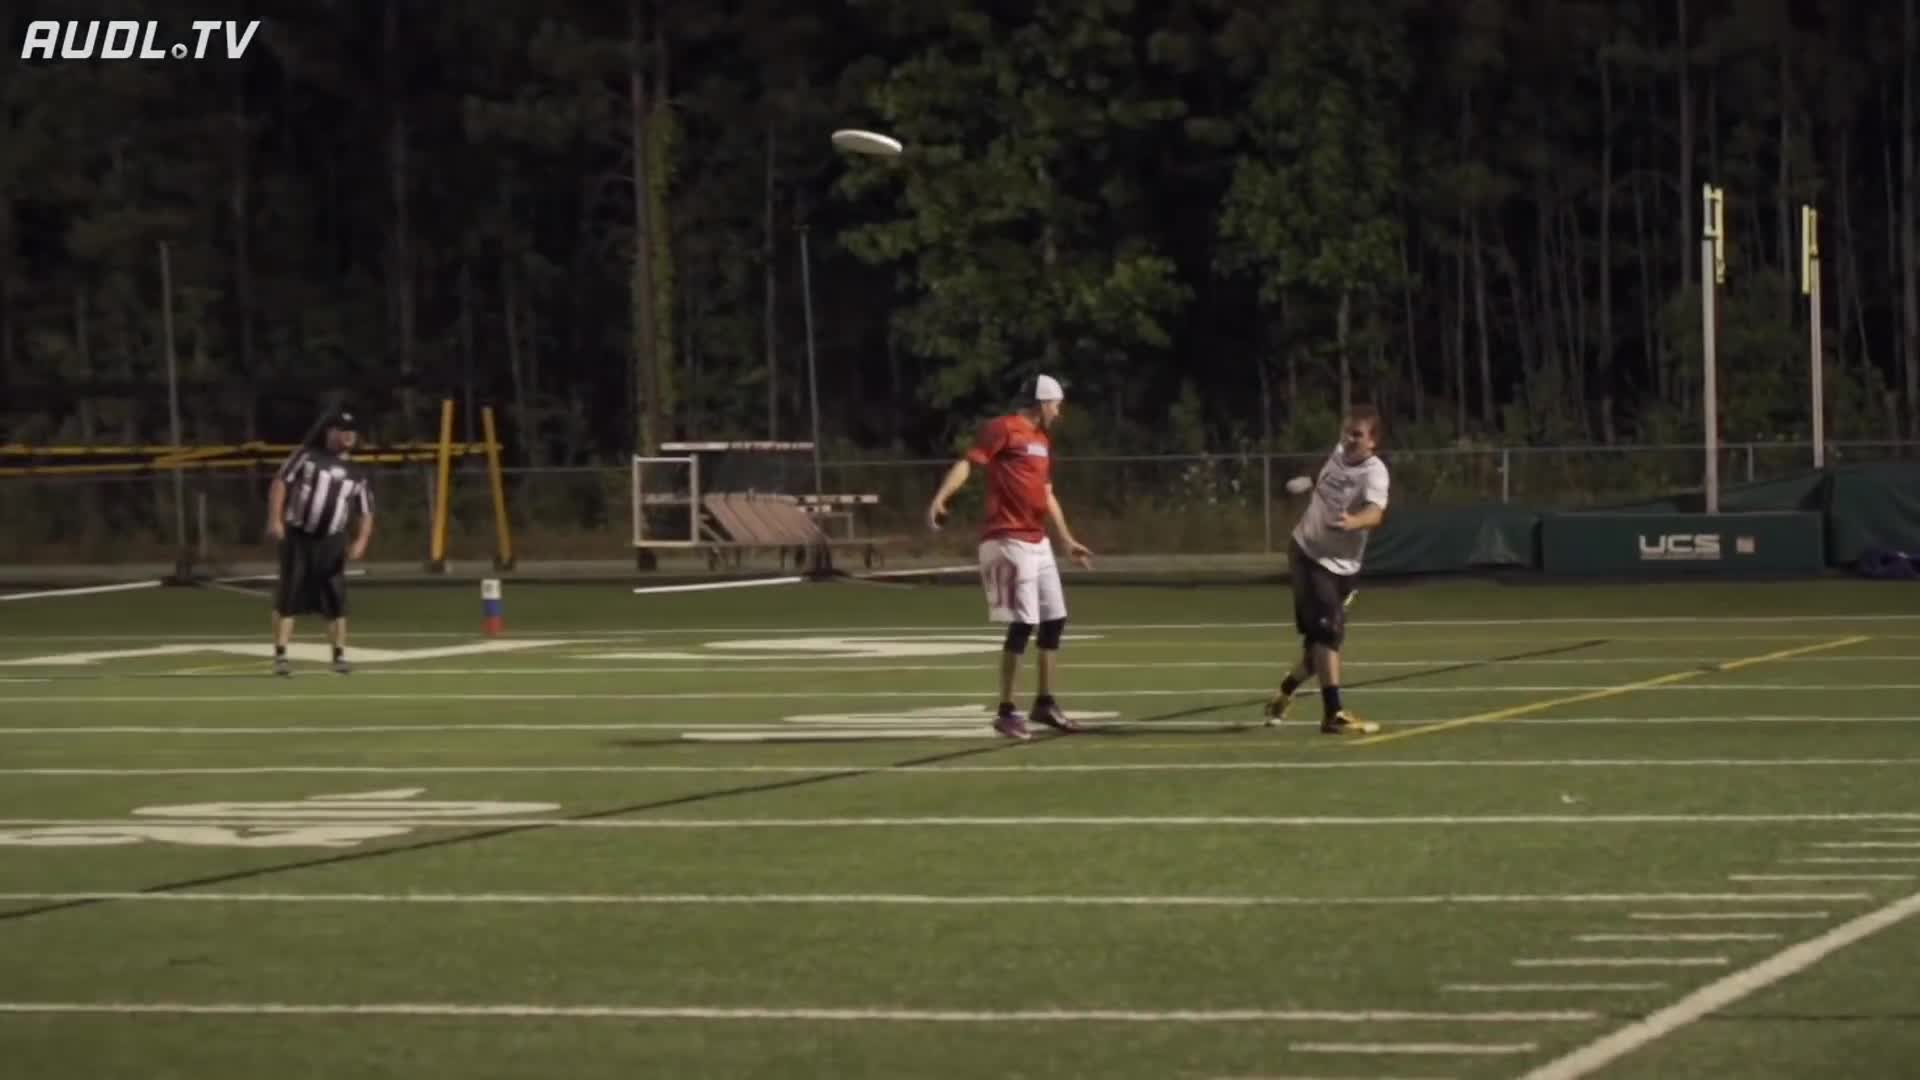 Sports, TheAUDLChannel, american ultimate disc league, audl, sports, theaudlchannel, ultimate, ultimate frisbee, Hunter Taylor Explodes for INT! GIFs